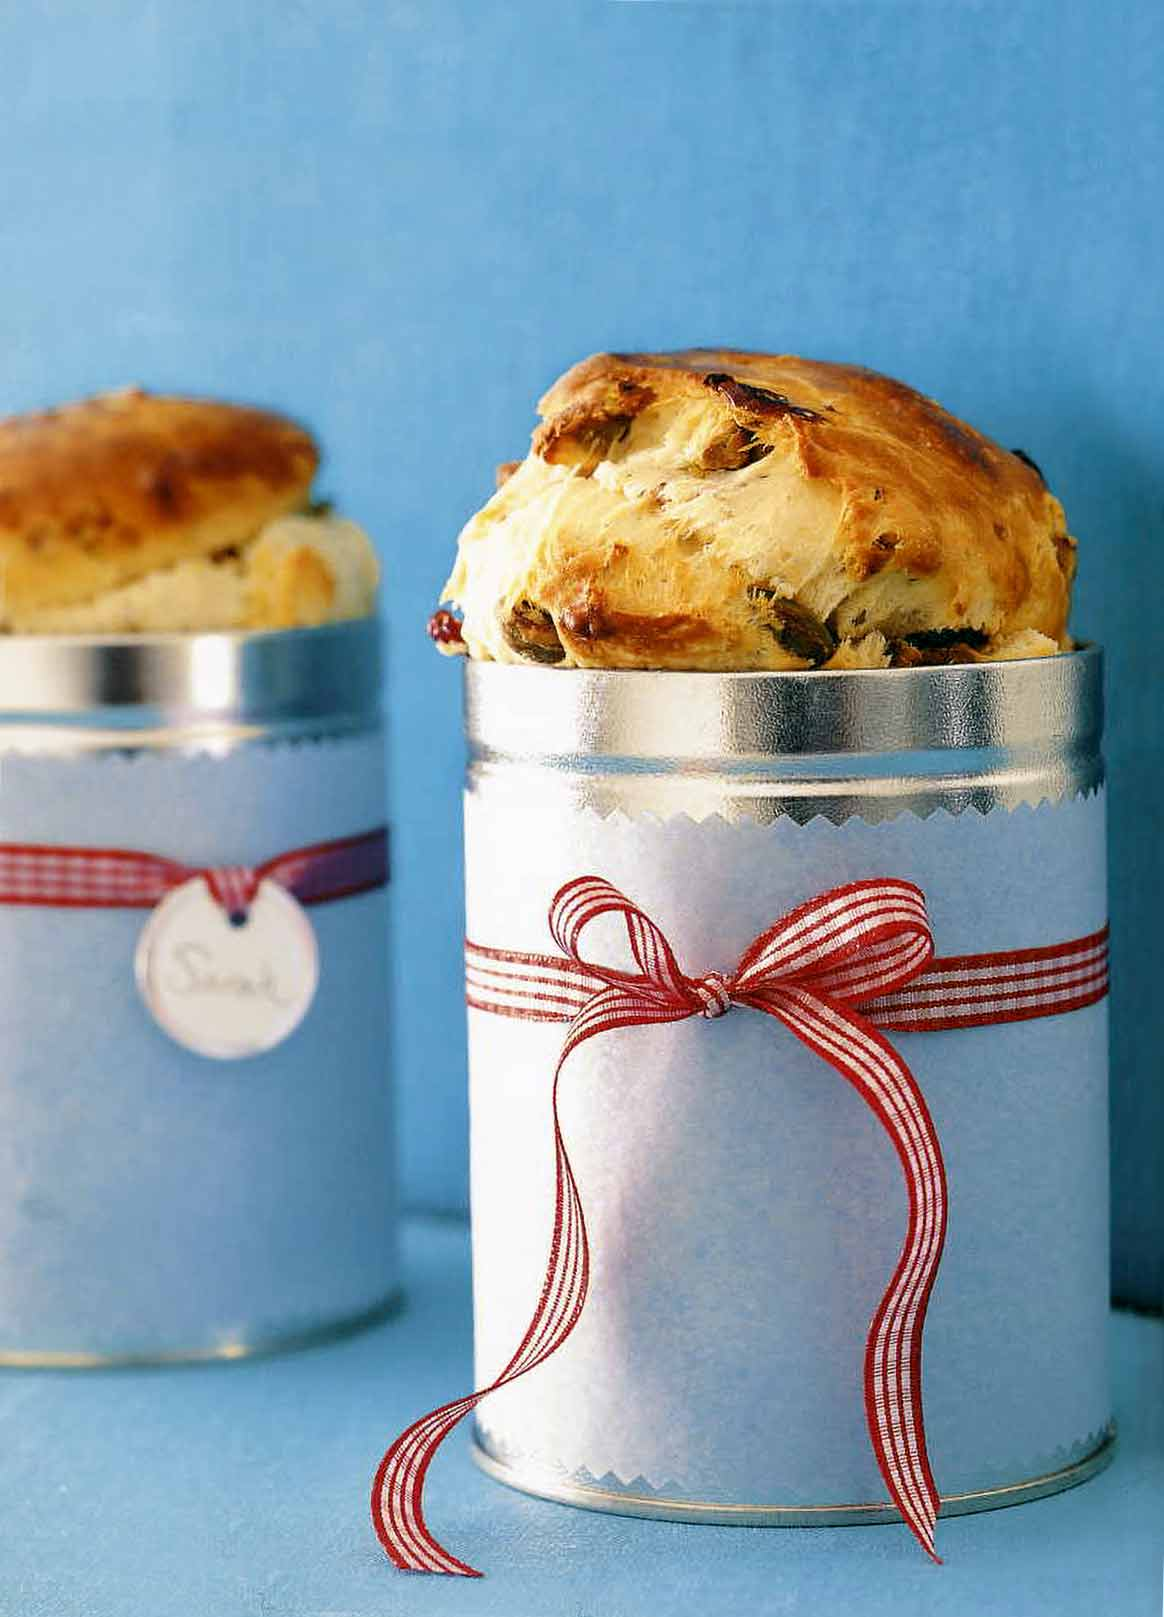 Two cranberry panettone breads baked in tins, wrapped in white paper and tired with red ribbon